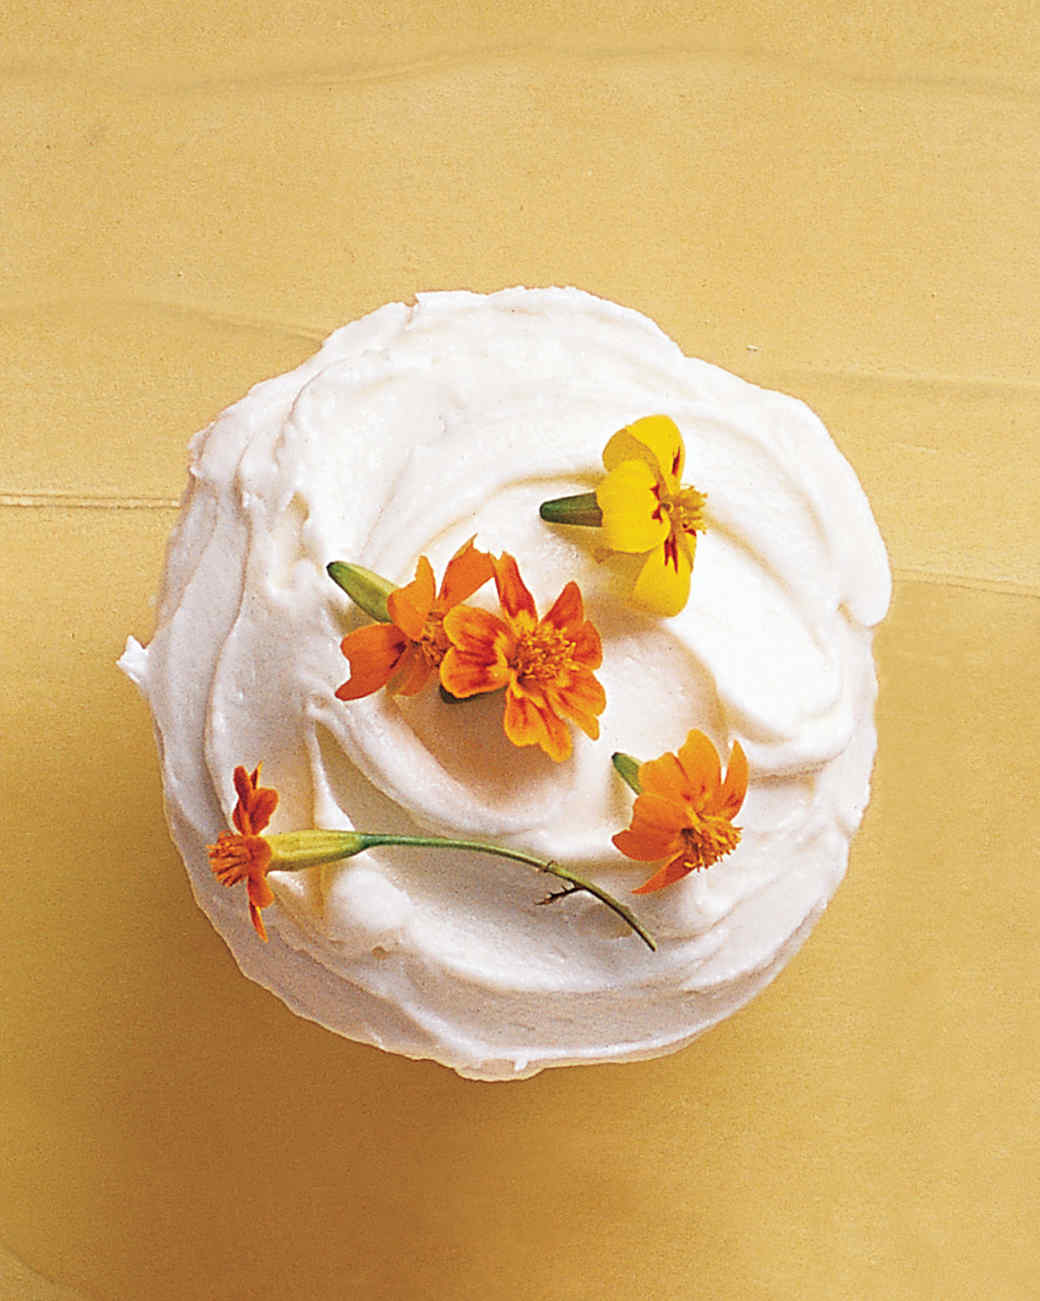 Edible-Flowers Cupcakes